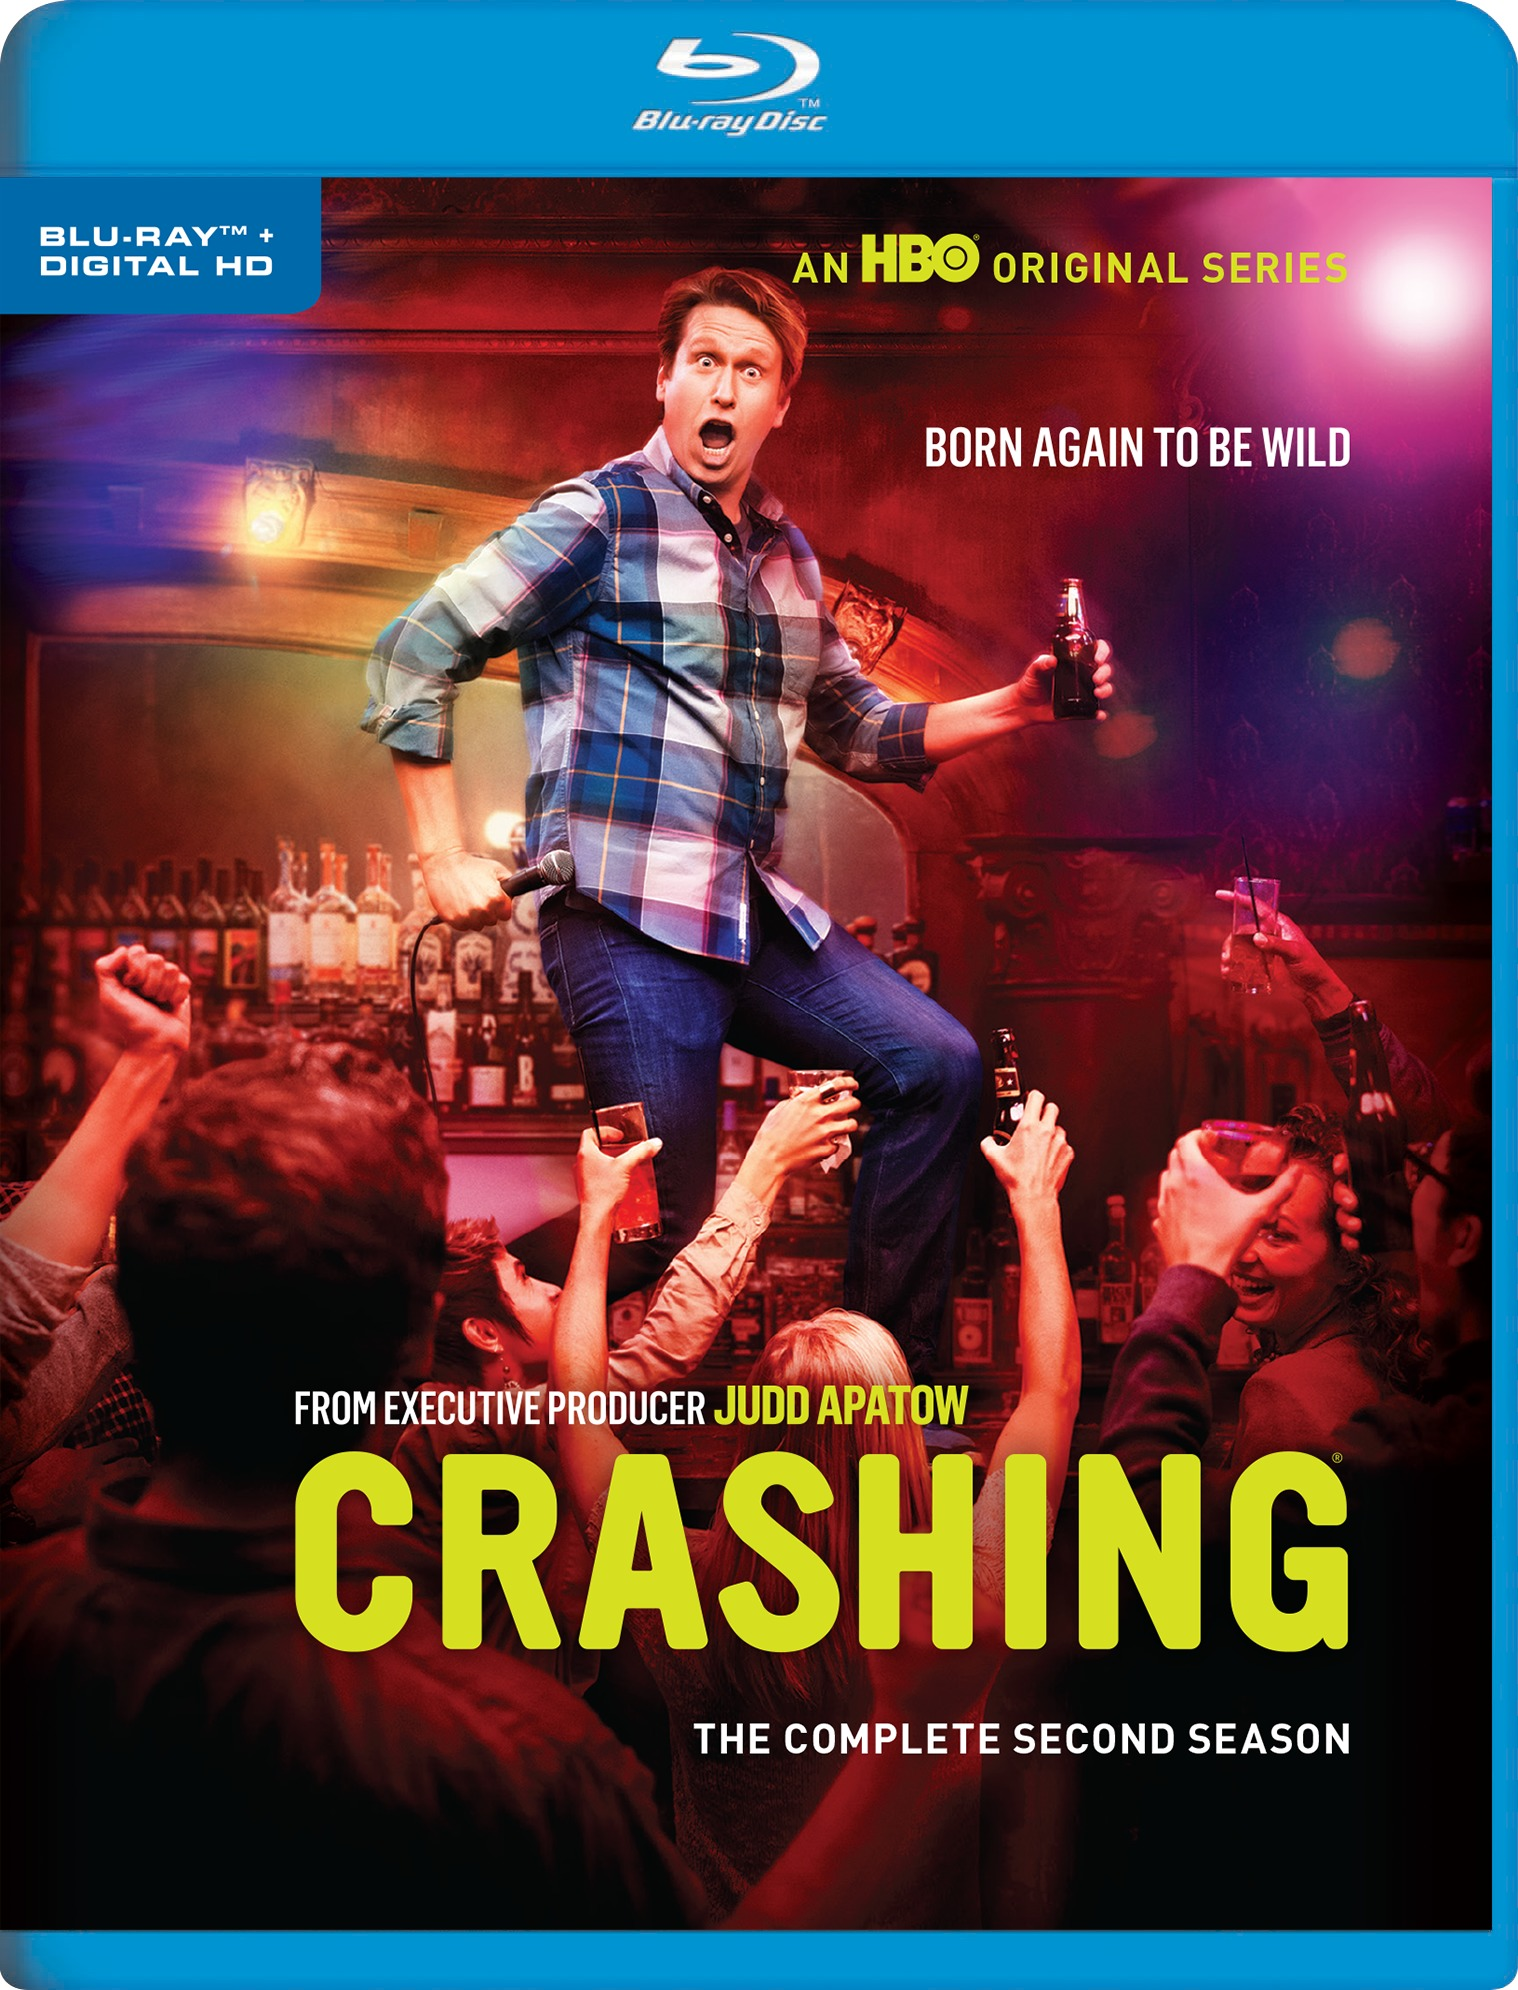 Crashing: The Complete Second Season (Blu-ray)(Region Free)